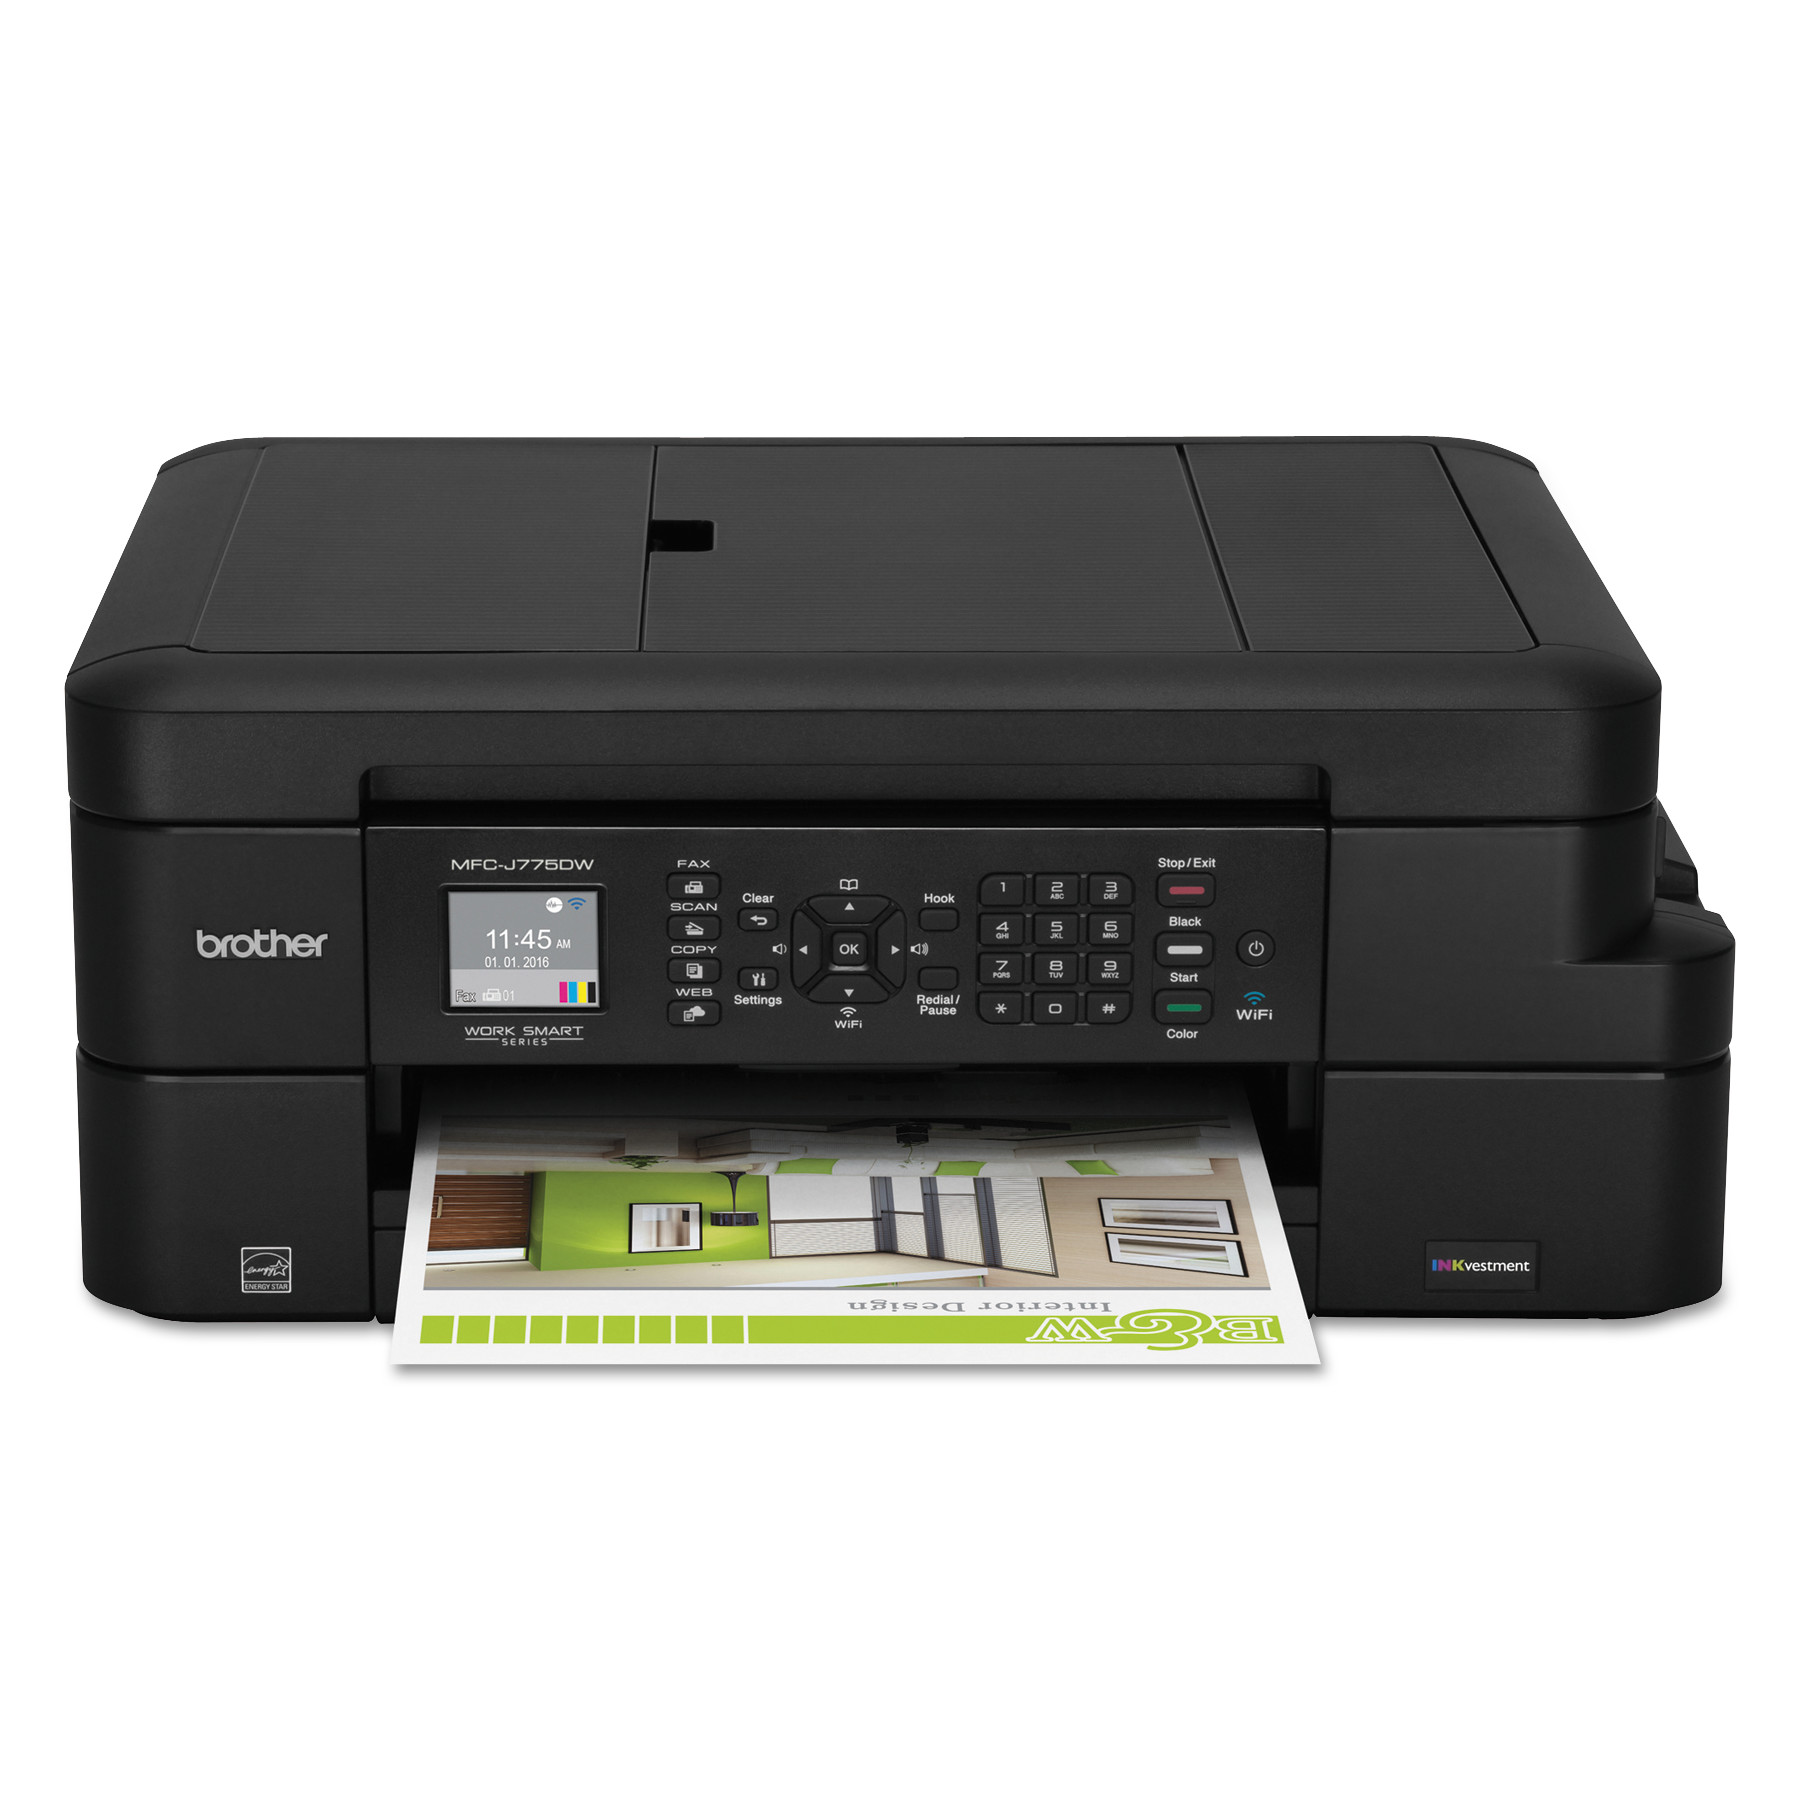 MFC-J775DW All-In-One Inkjet Printer, Copy/Fax/Print/Scan